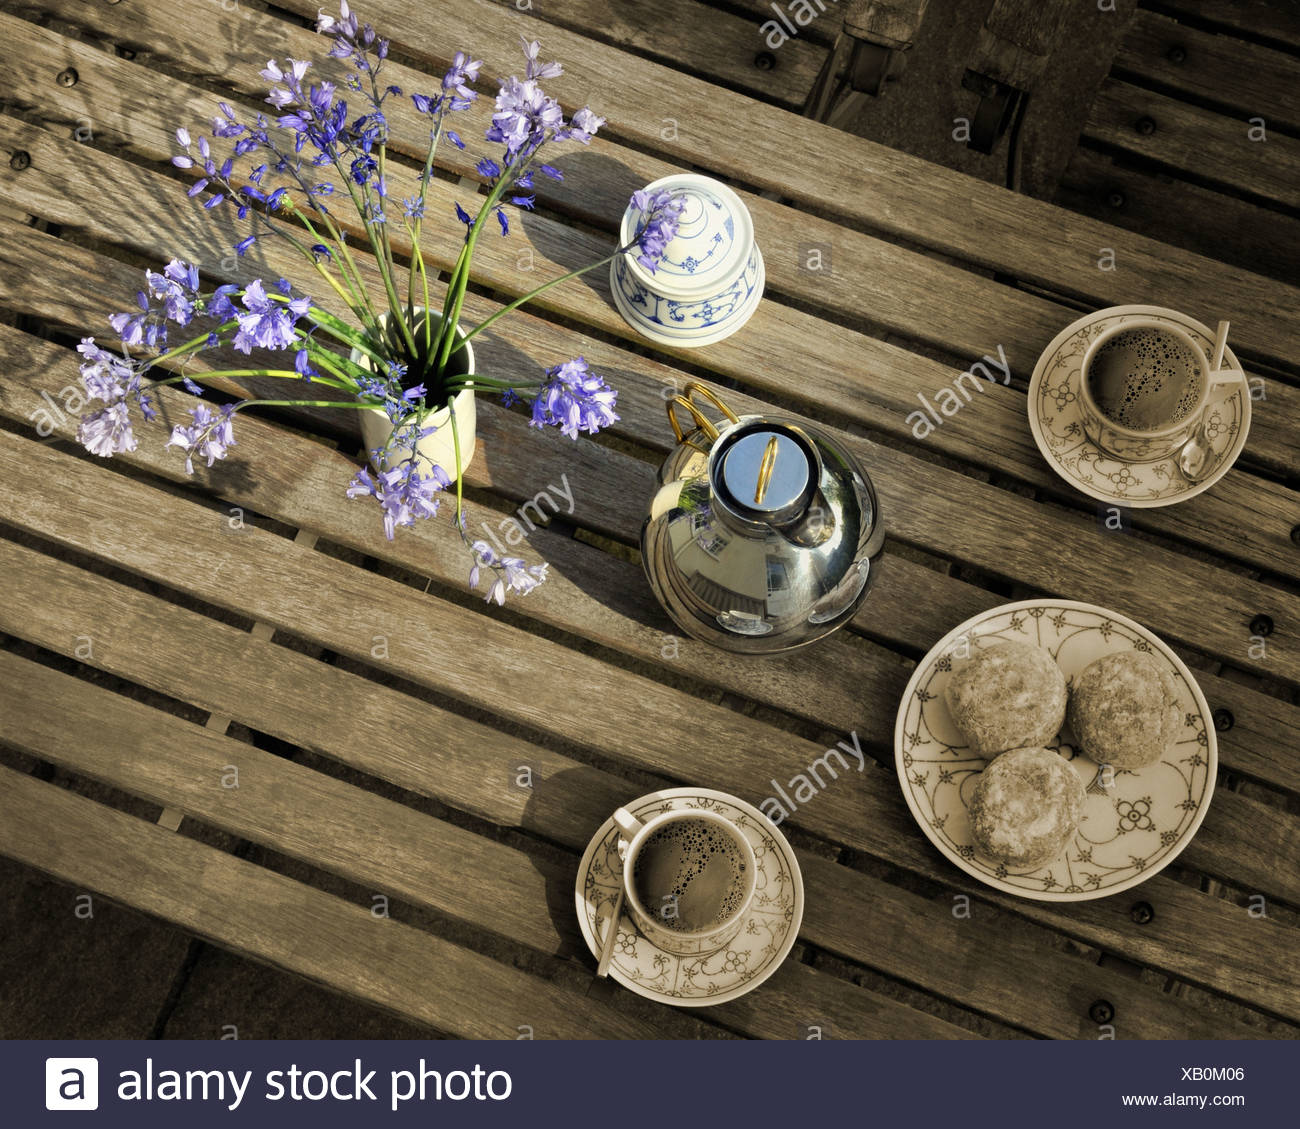 LIFESTYLE: Coffe Table with flowers - Stock Image